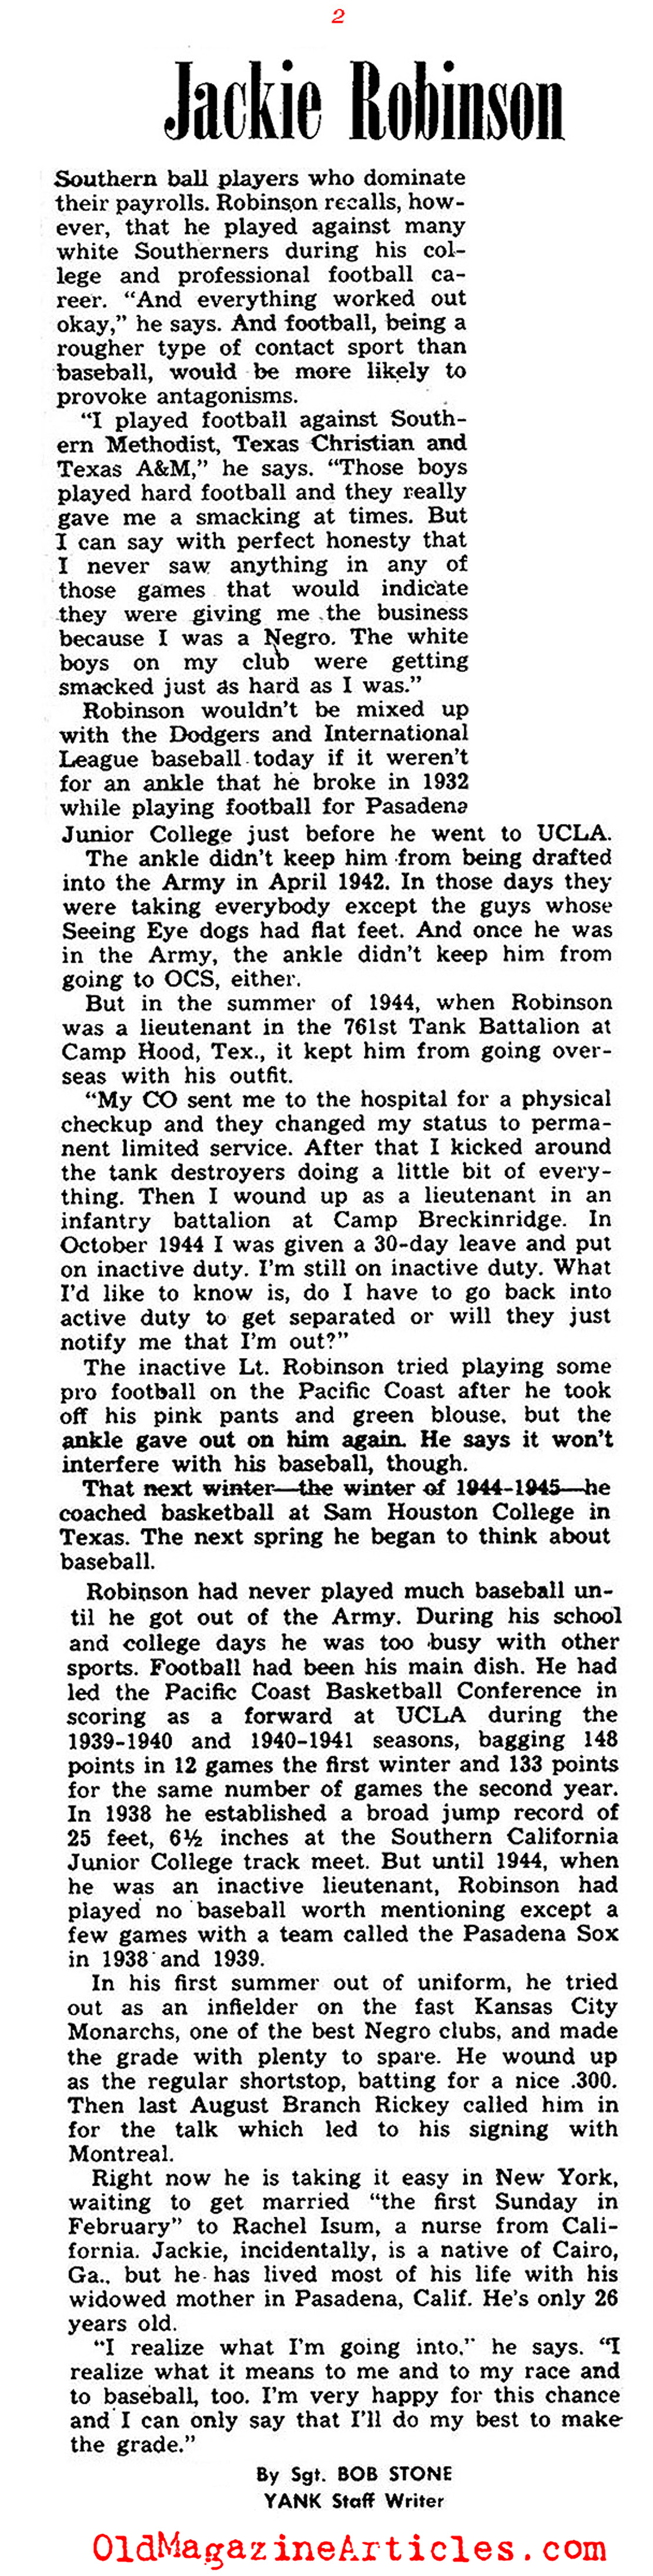 Jackie Robinson: In the Beginning (Yank Magazine, 1945)